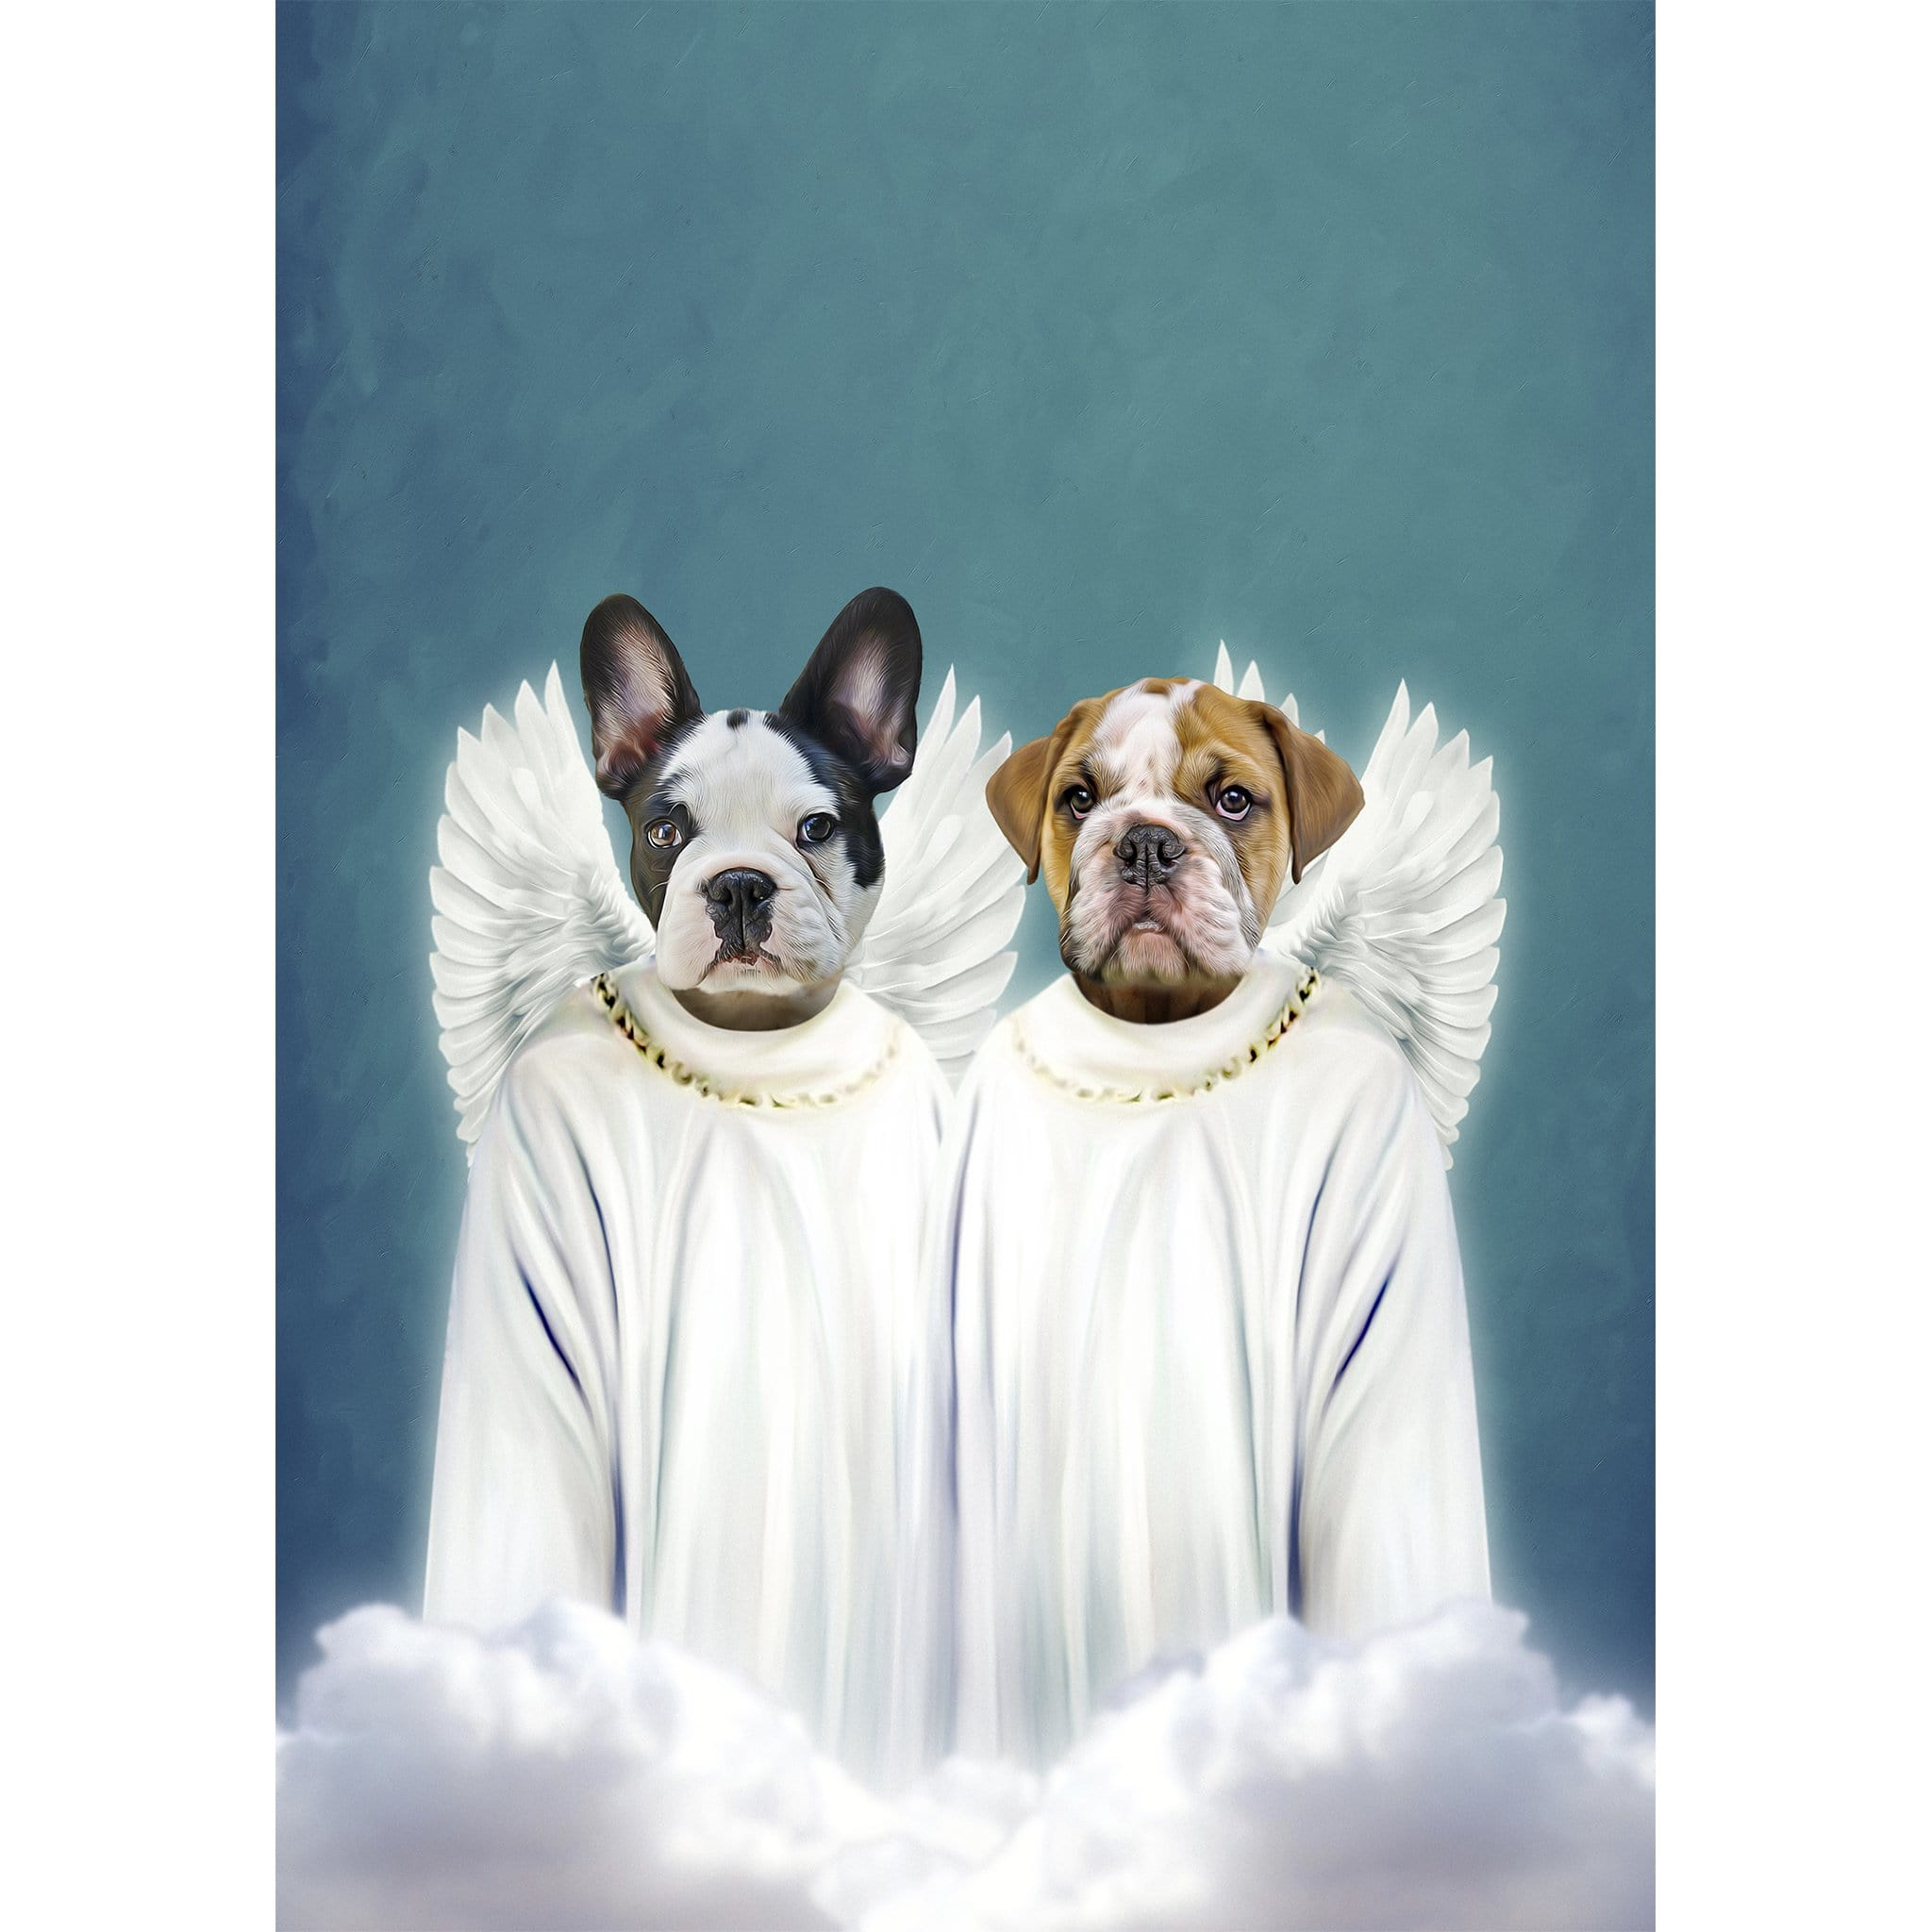 '2 Angels' 2 Pet Digital Portrait